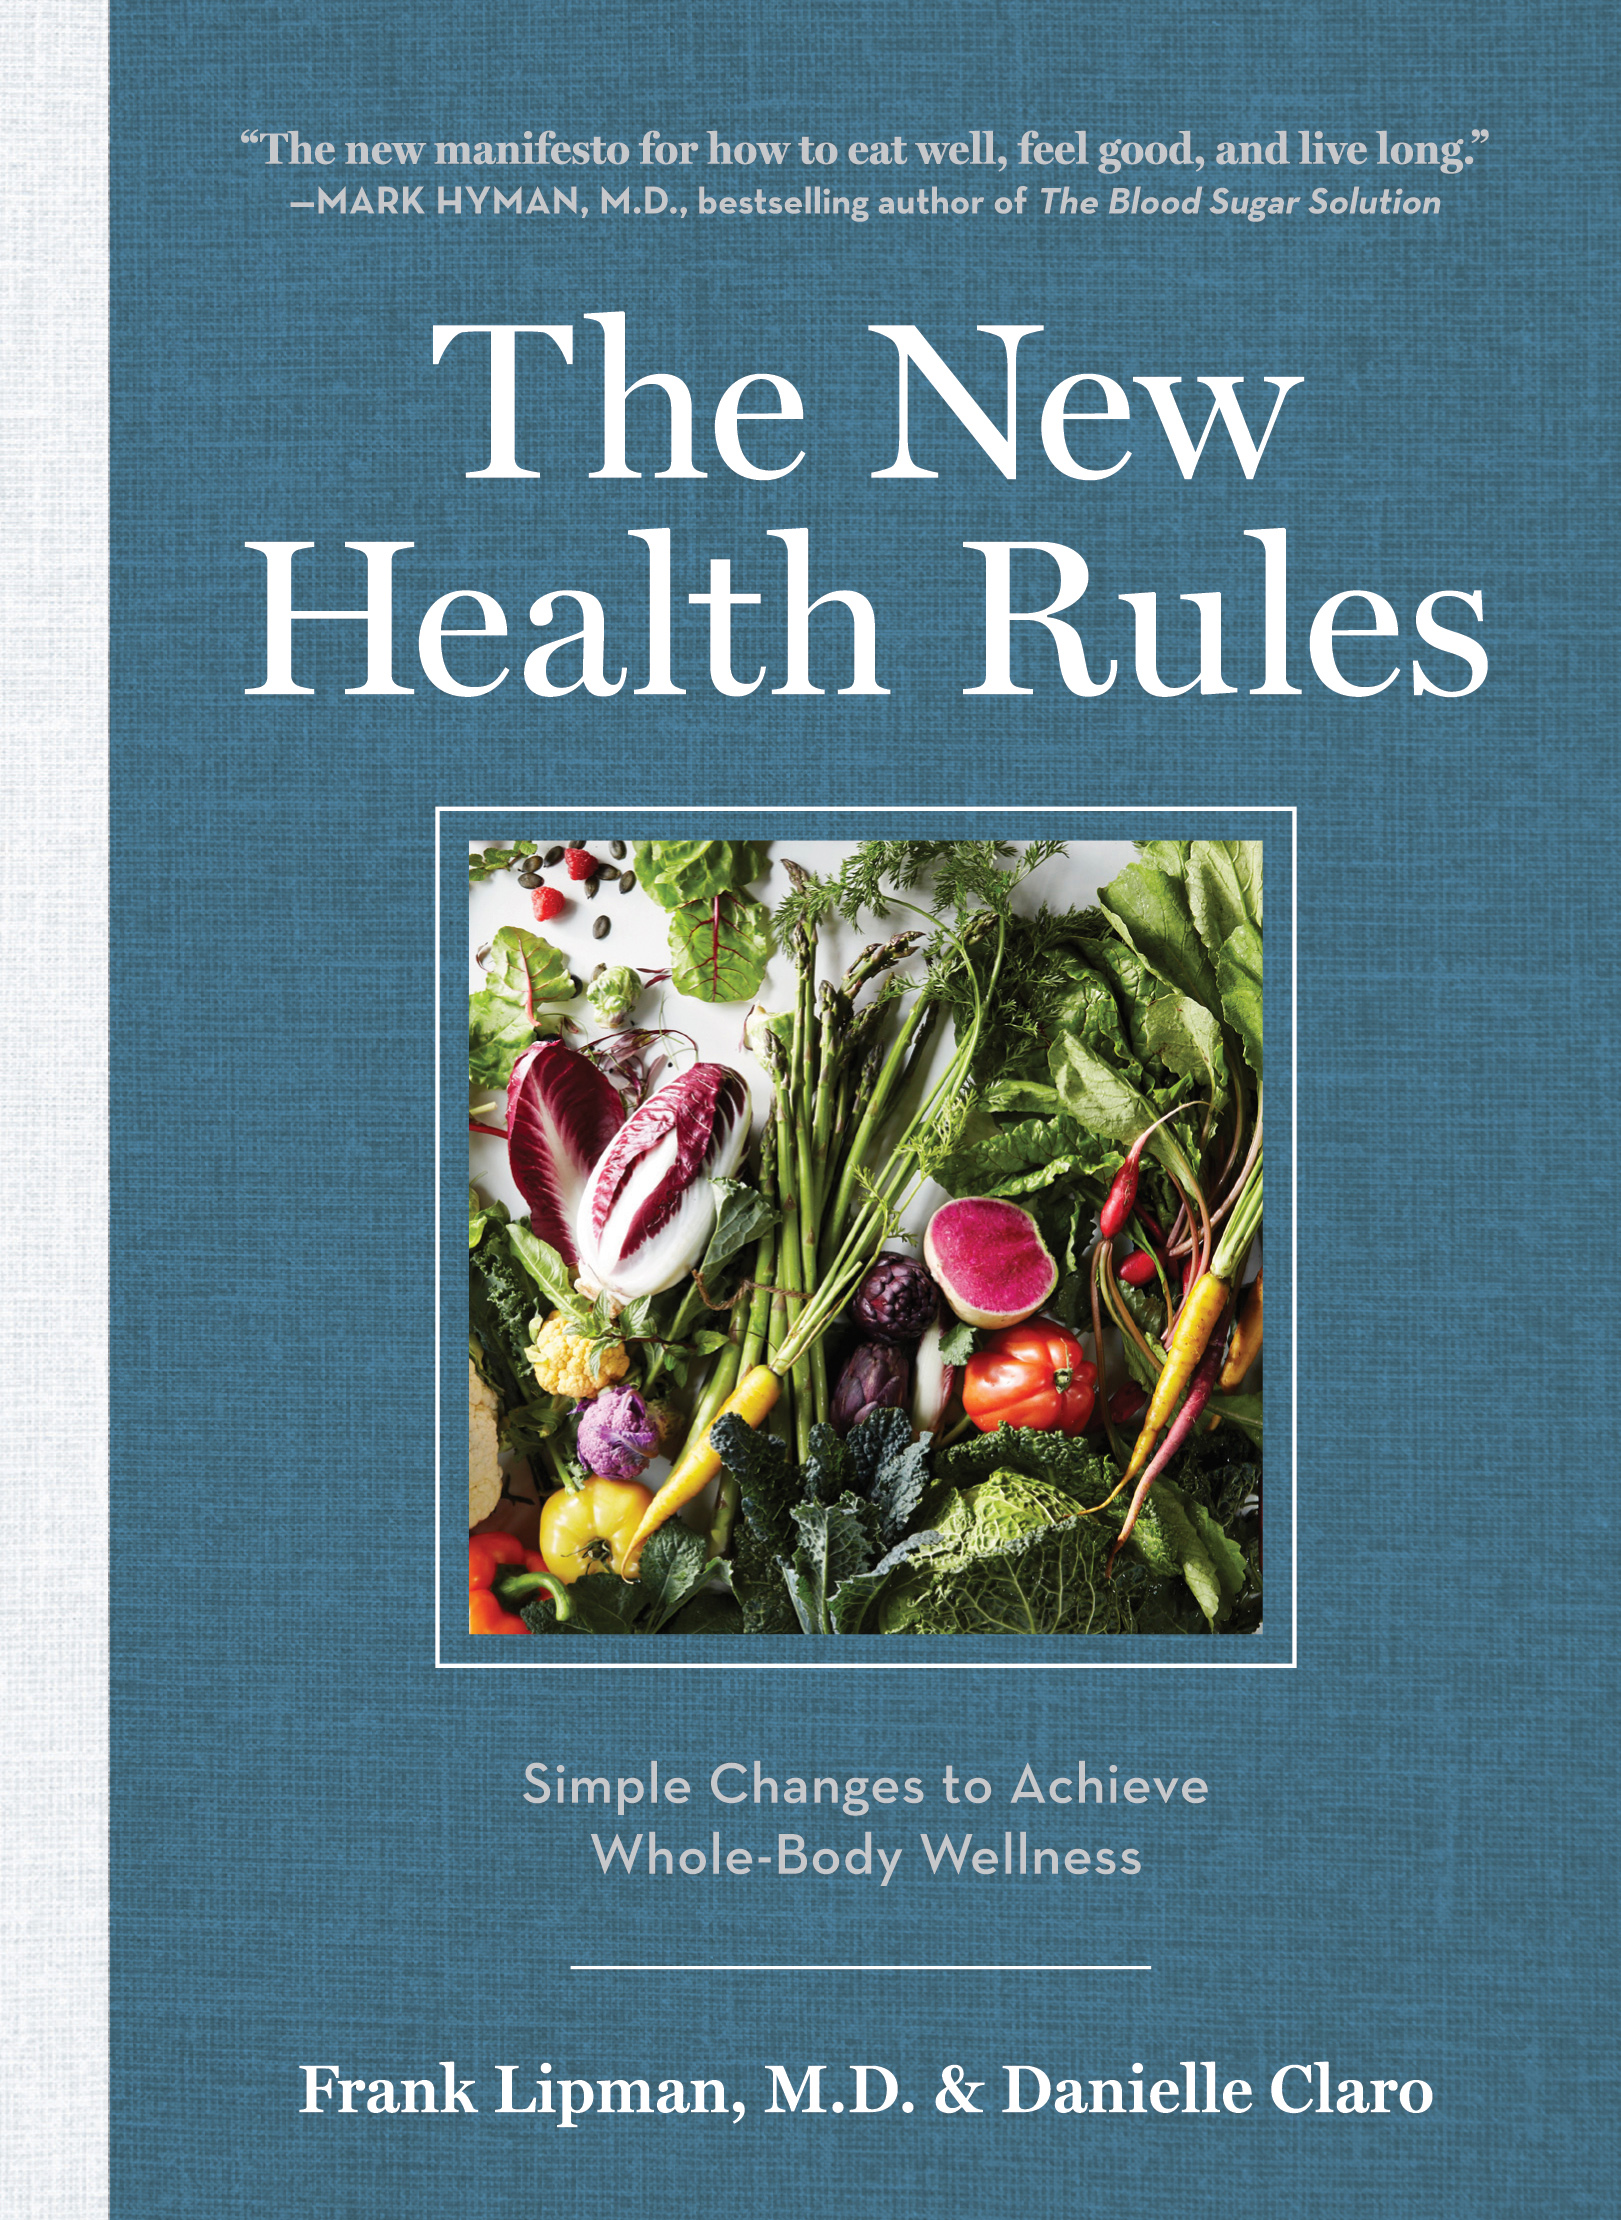 COVER.The New Health Rules